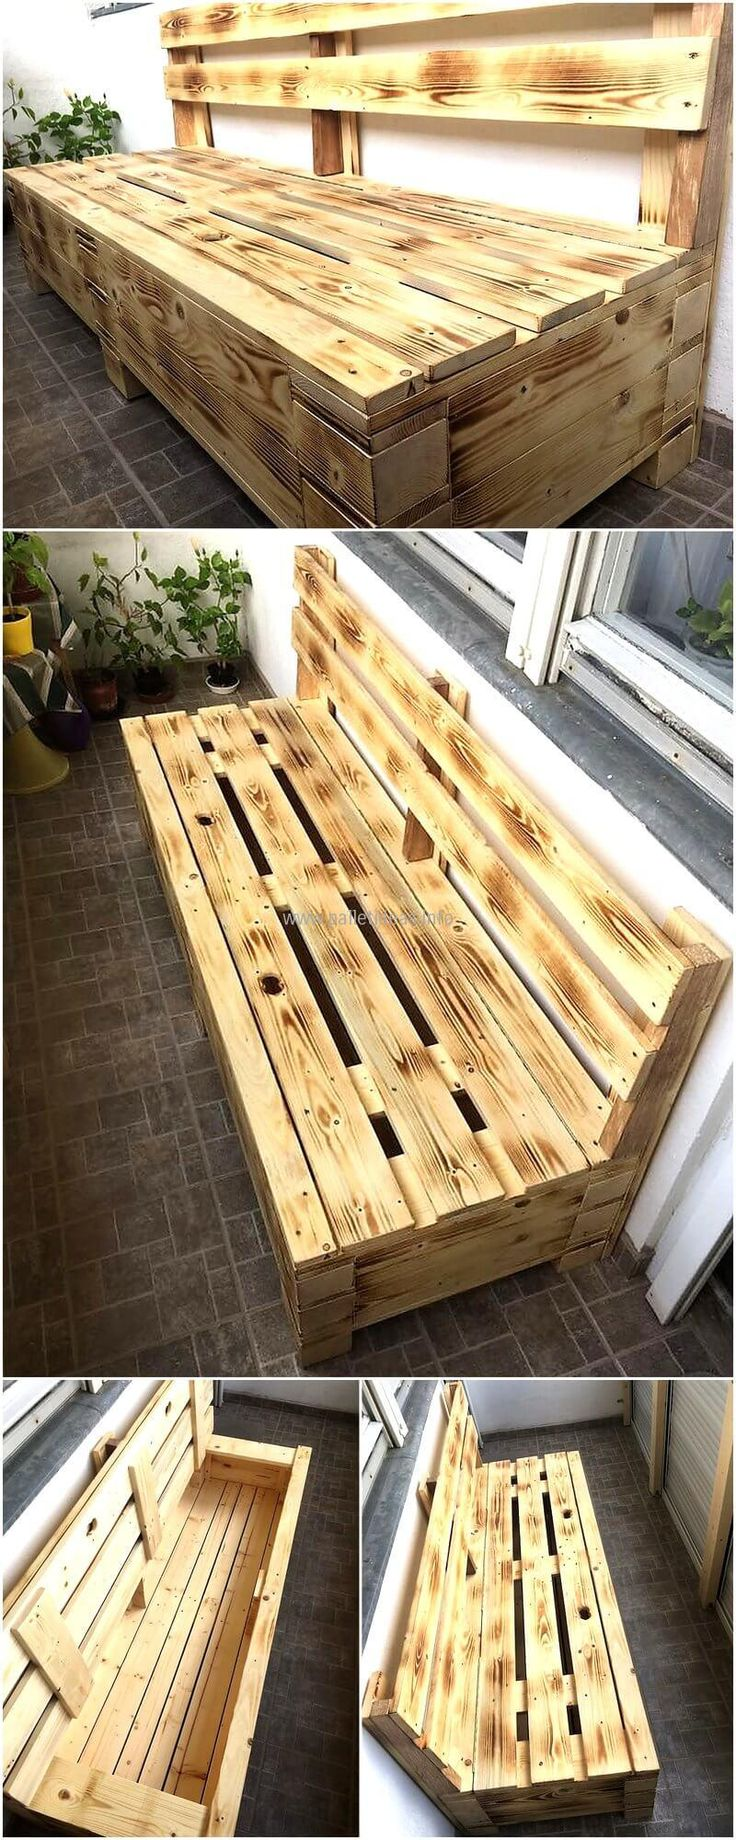 best 25 wooden pallet furniture ideas only on pinterest wooden pallet projects crafts out of. Black Bedroom Furniture Sets. Home Design Ideas